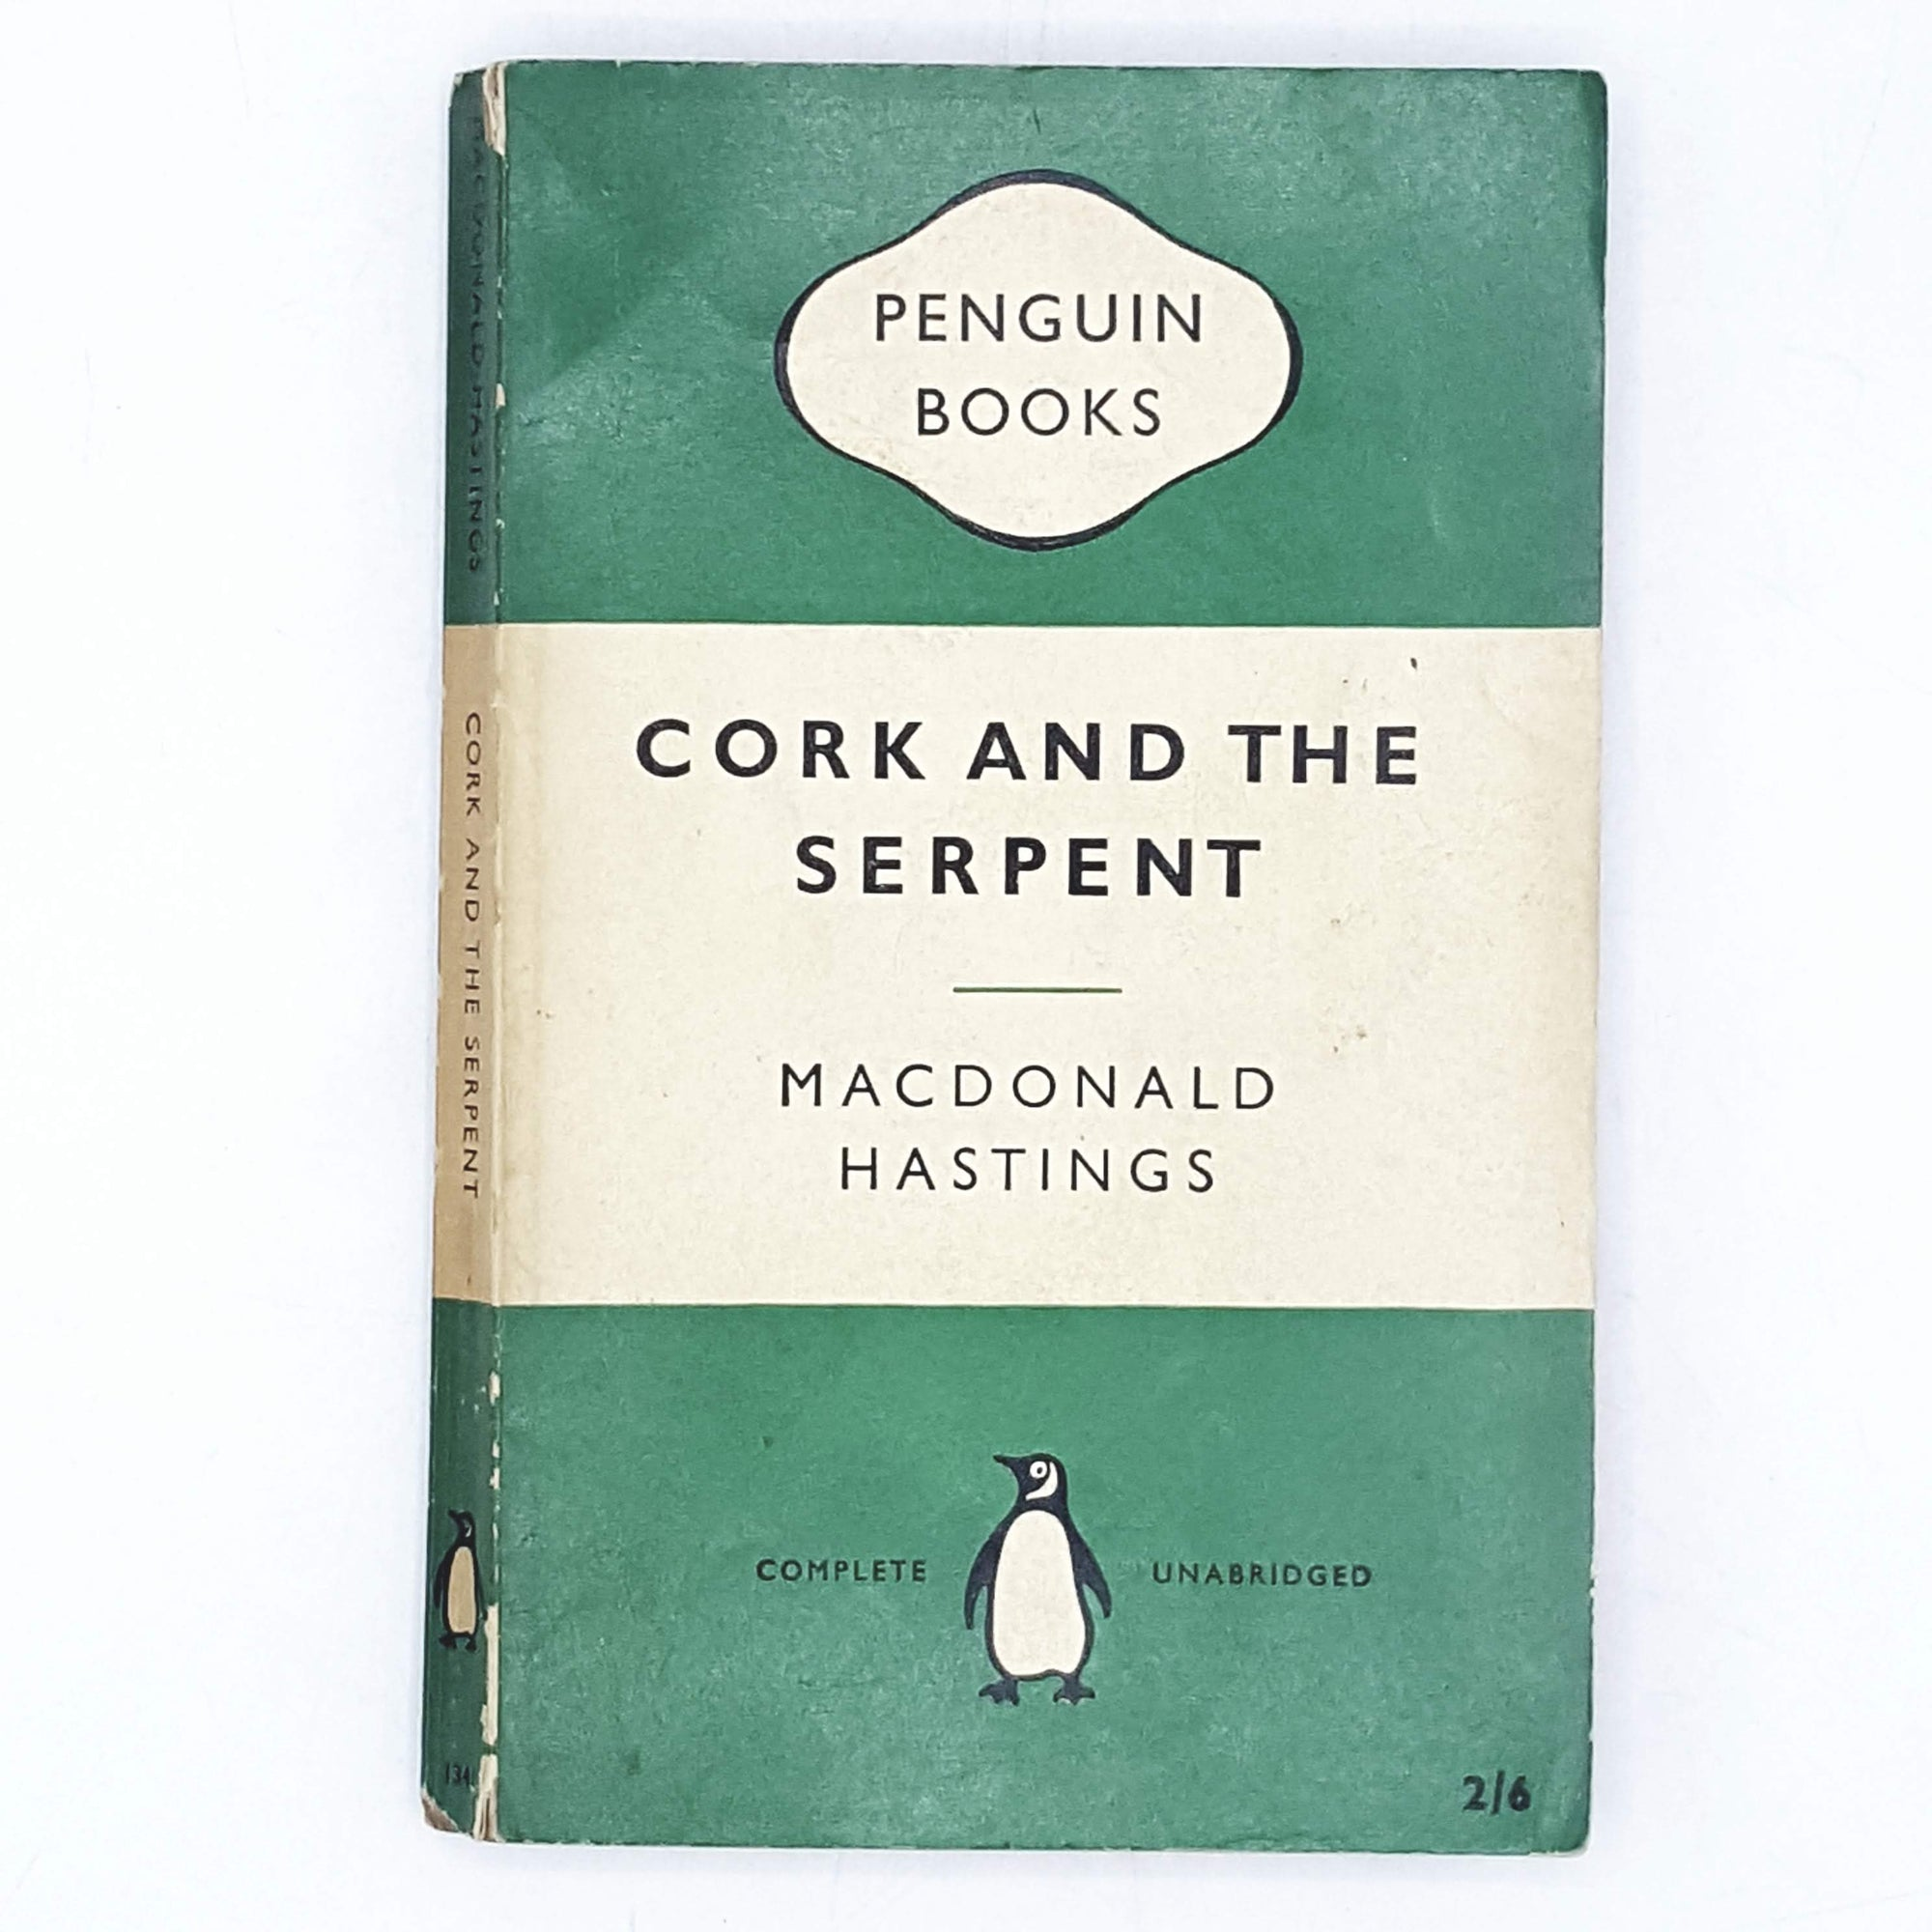 First Edition Penguin Cork and the Serpent by MacDonald Hastings 1959